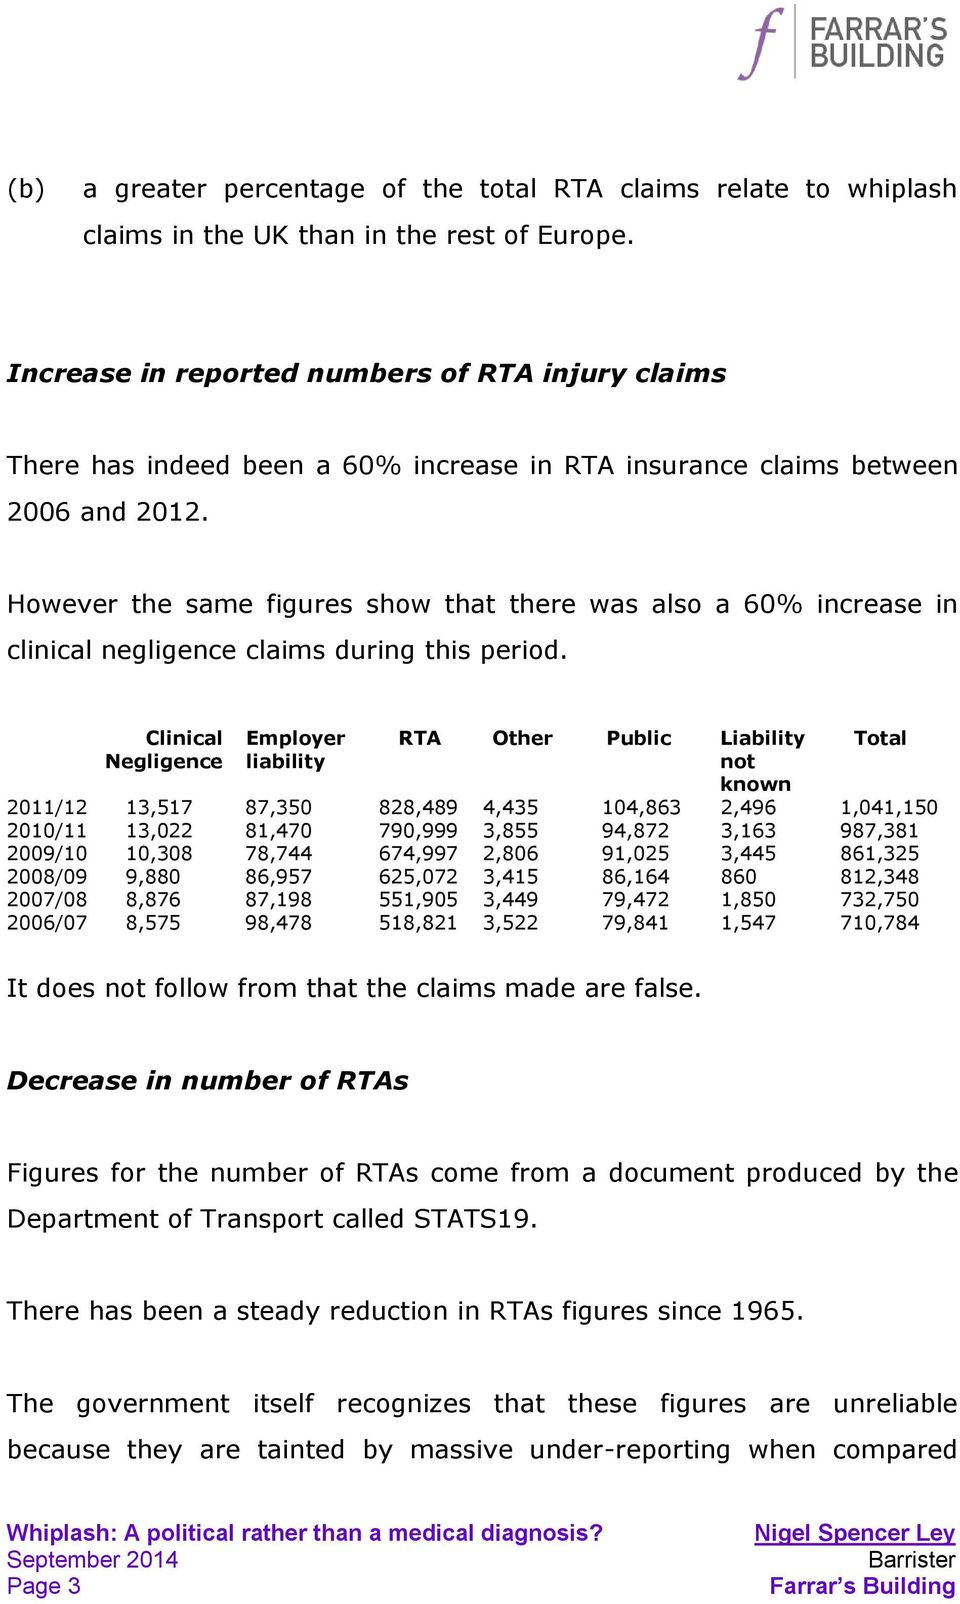 However the same figures show that there was also a 60% increase in clinical negligence claims during this period.